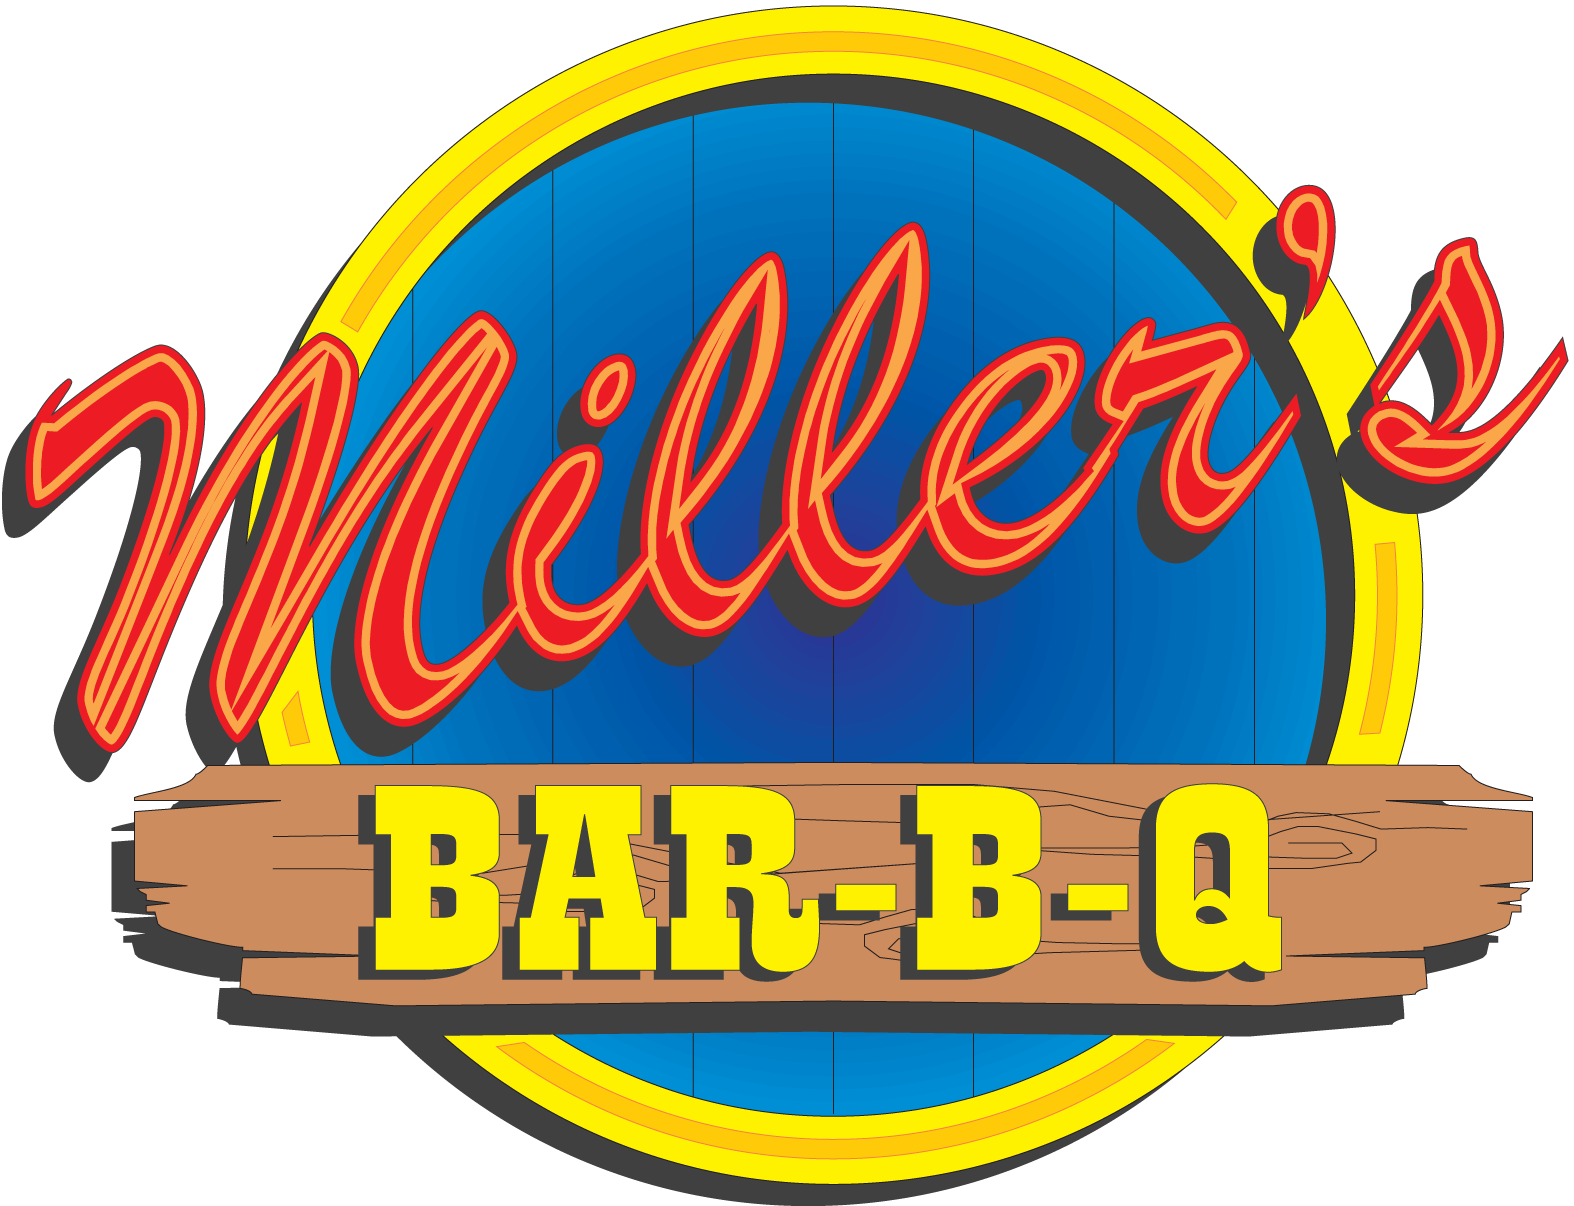 Miller's BarBQ Corpus Christi, Texas - South Texas' Greatest BarBQ